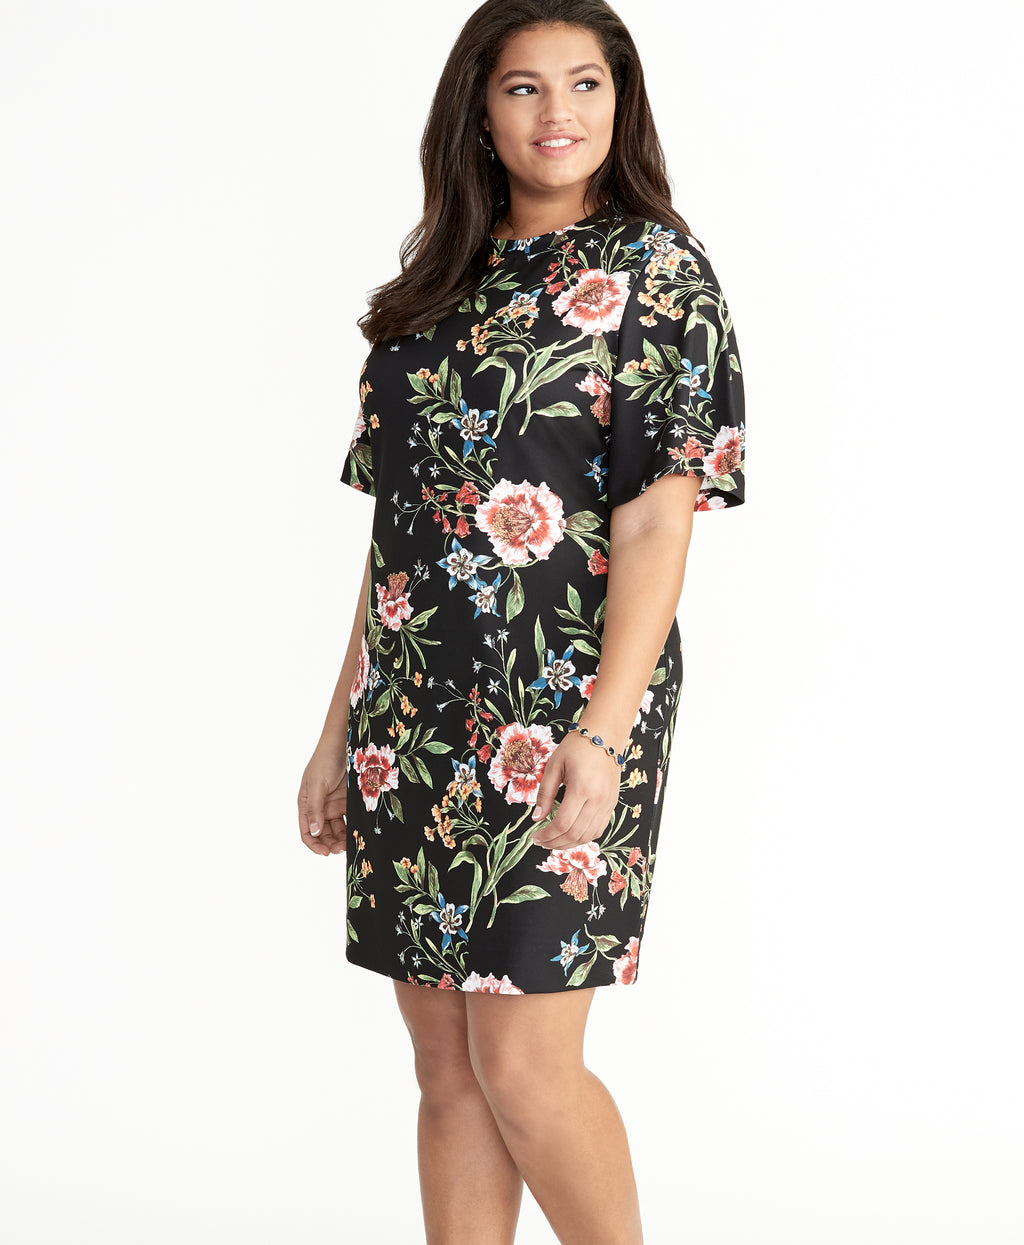 JANIE MINI DRESS | JANIE MINI DRESS